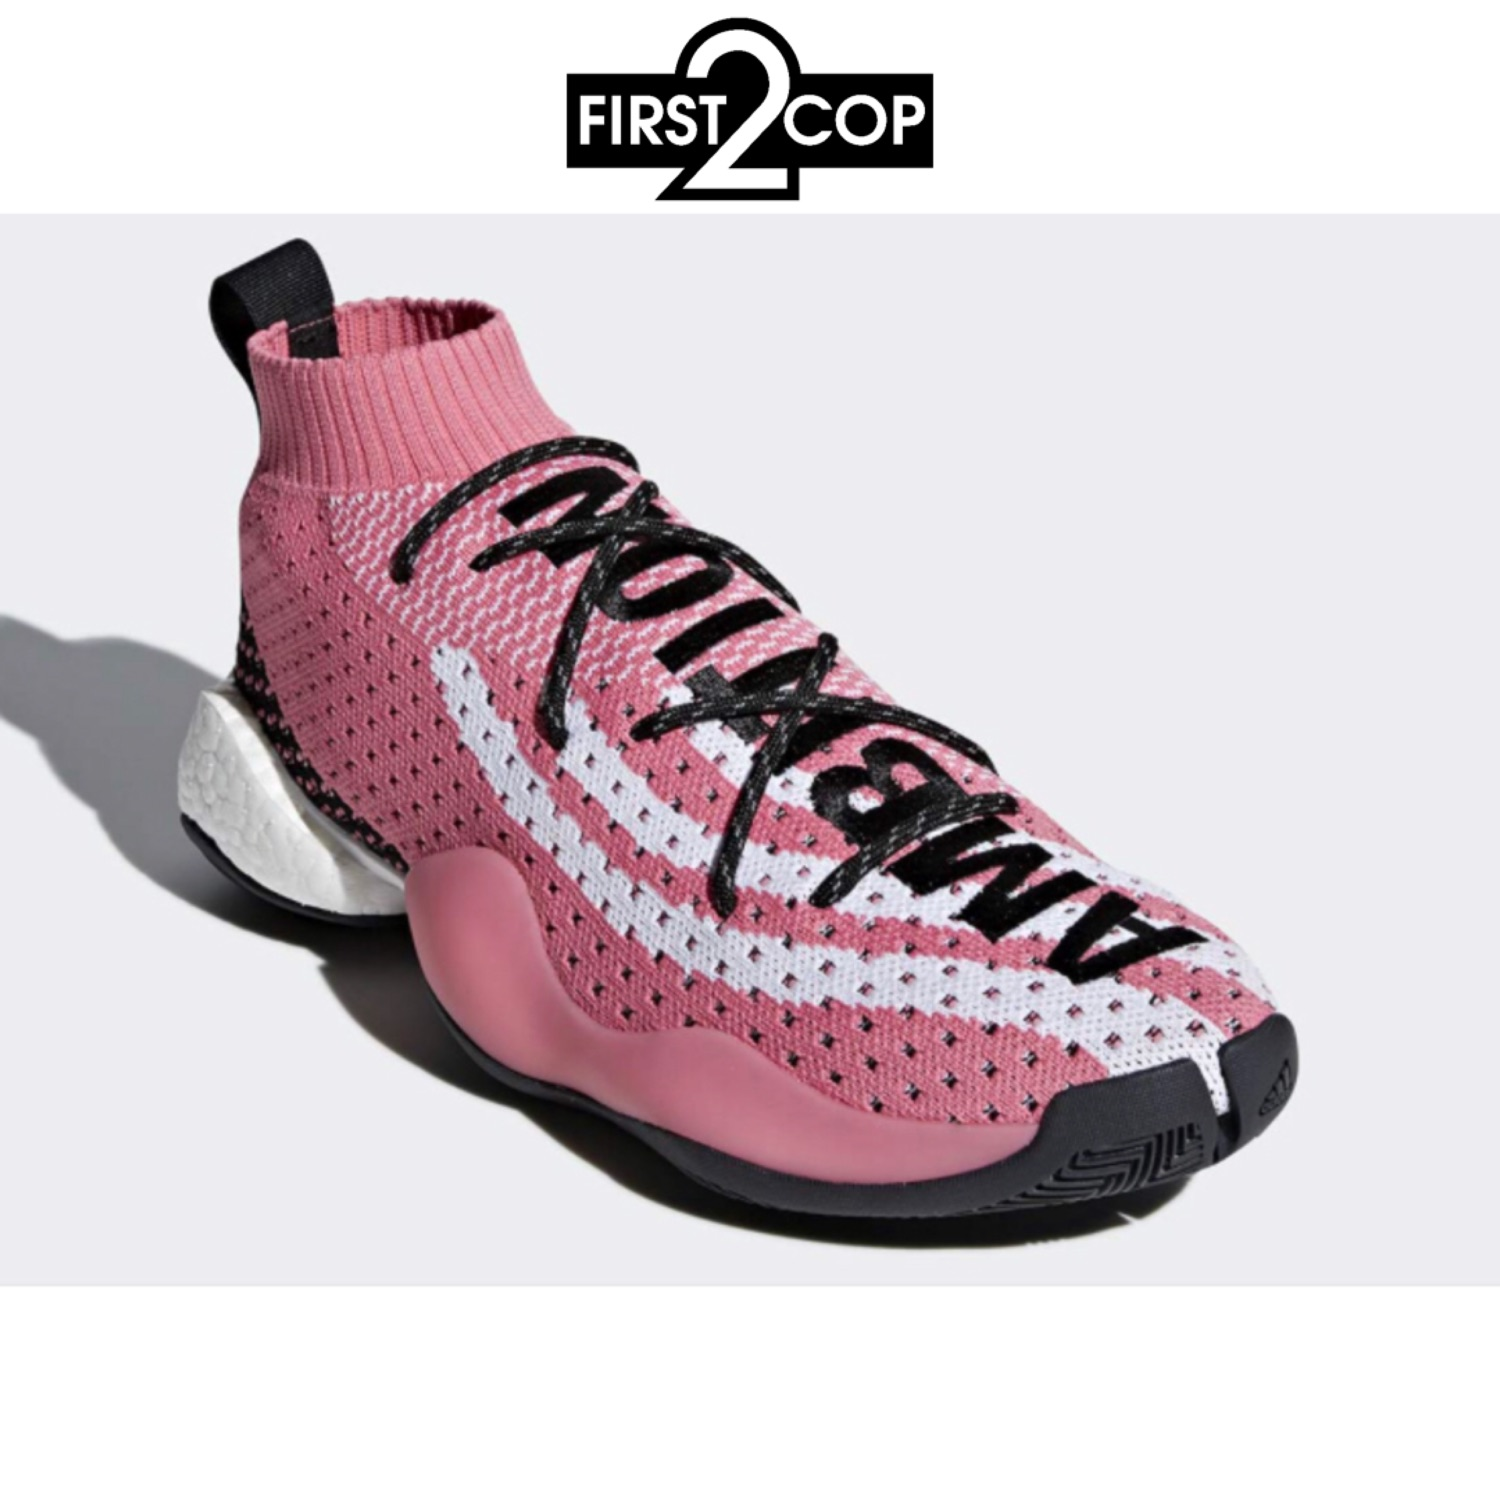 wholesale dealer 8f422 06ffb Crazy Byw Lvl X Pharrell Willams Shoes